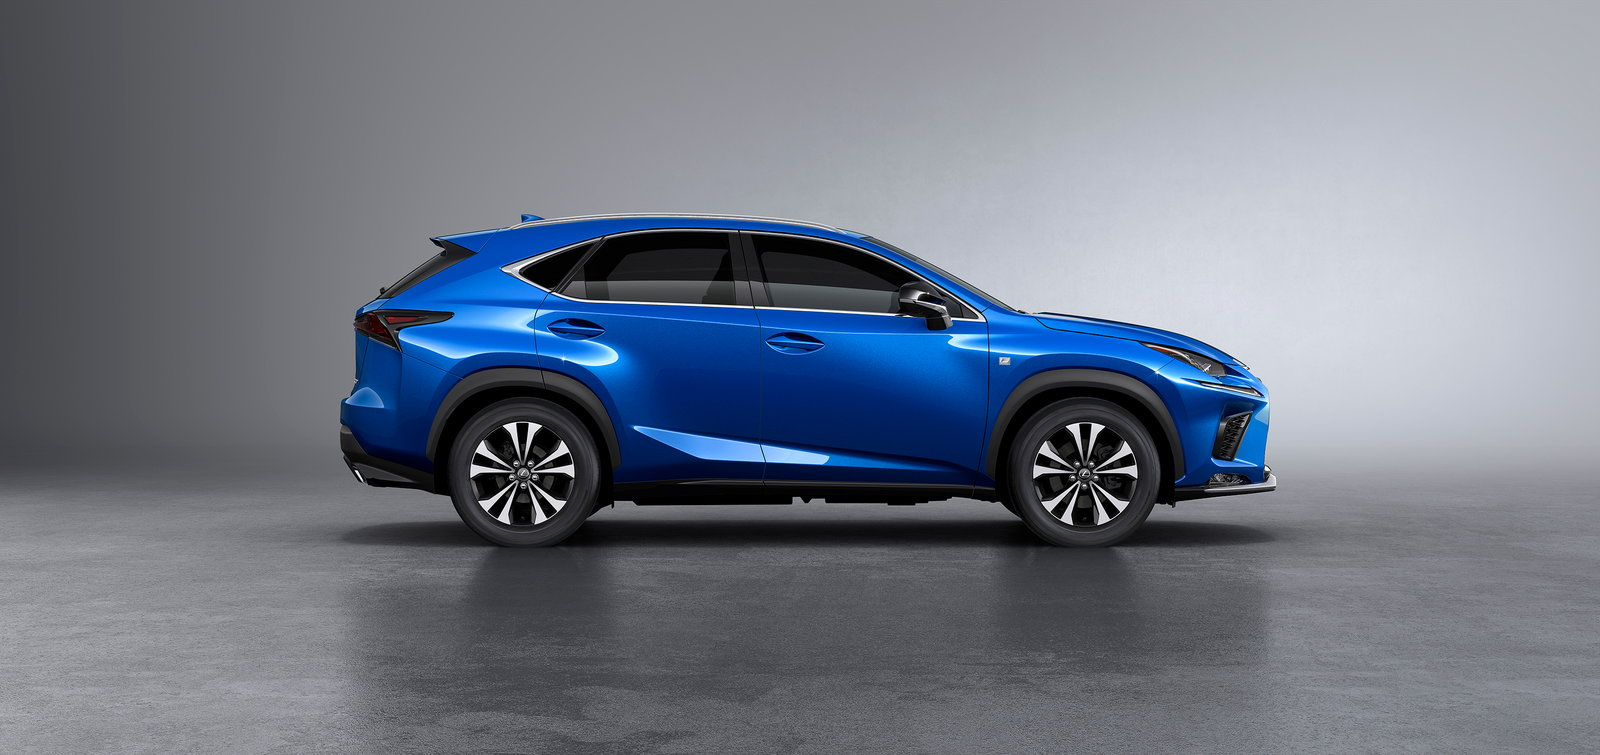 2018 lexus nx 300 deals prices incentives leases overview carsdirect. Black Bedroom Furniture Sets. Home Design Ideas